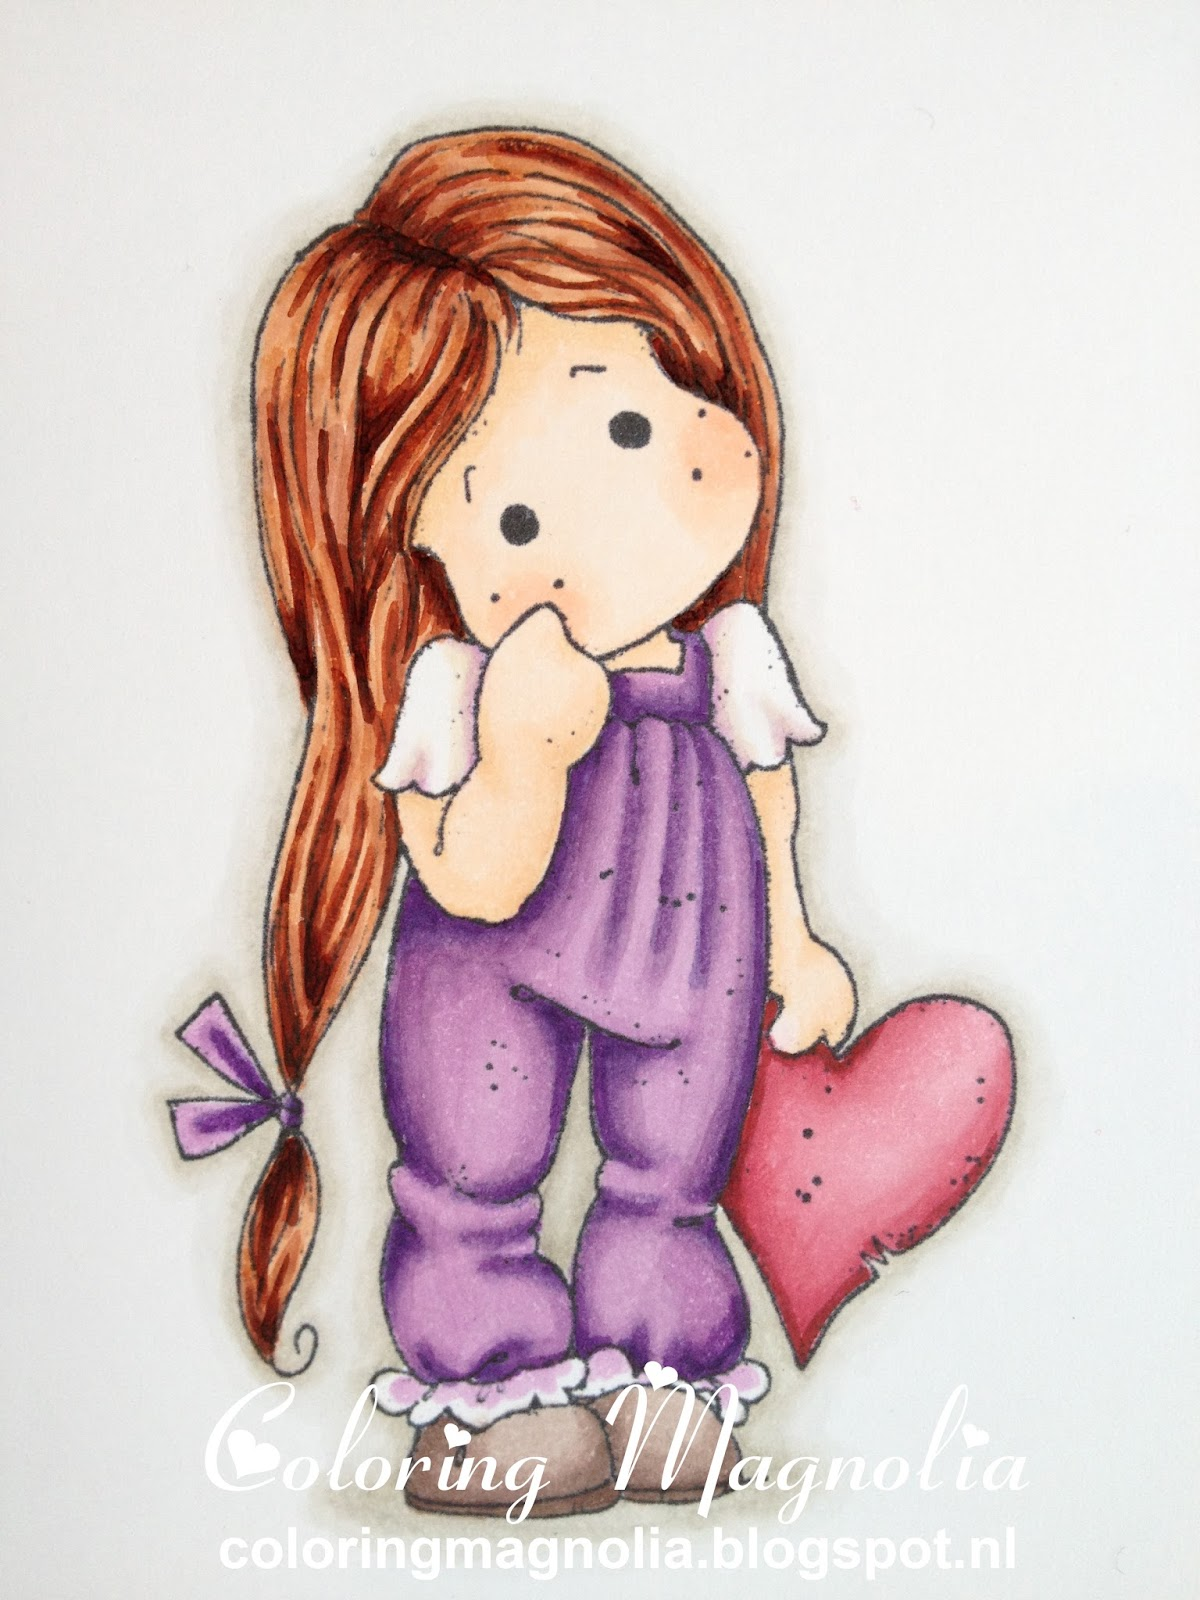 Coloring Magnolia Stamp 2013 With Love Collection - Lonely Tilda With Heart